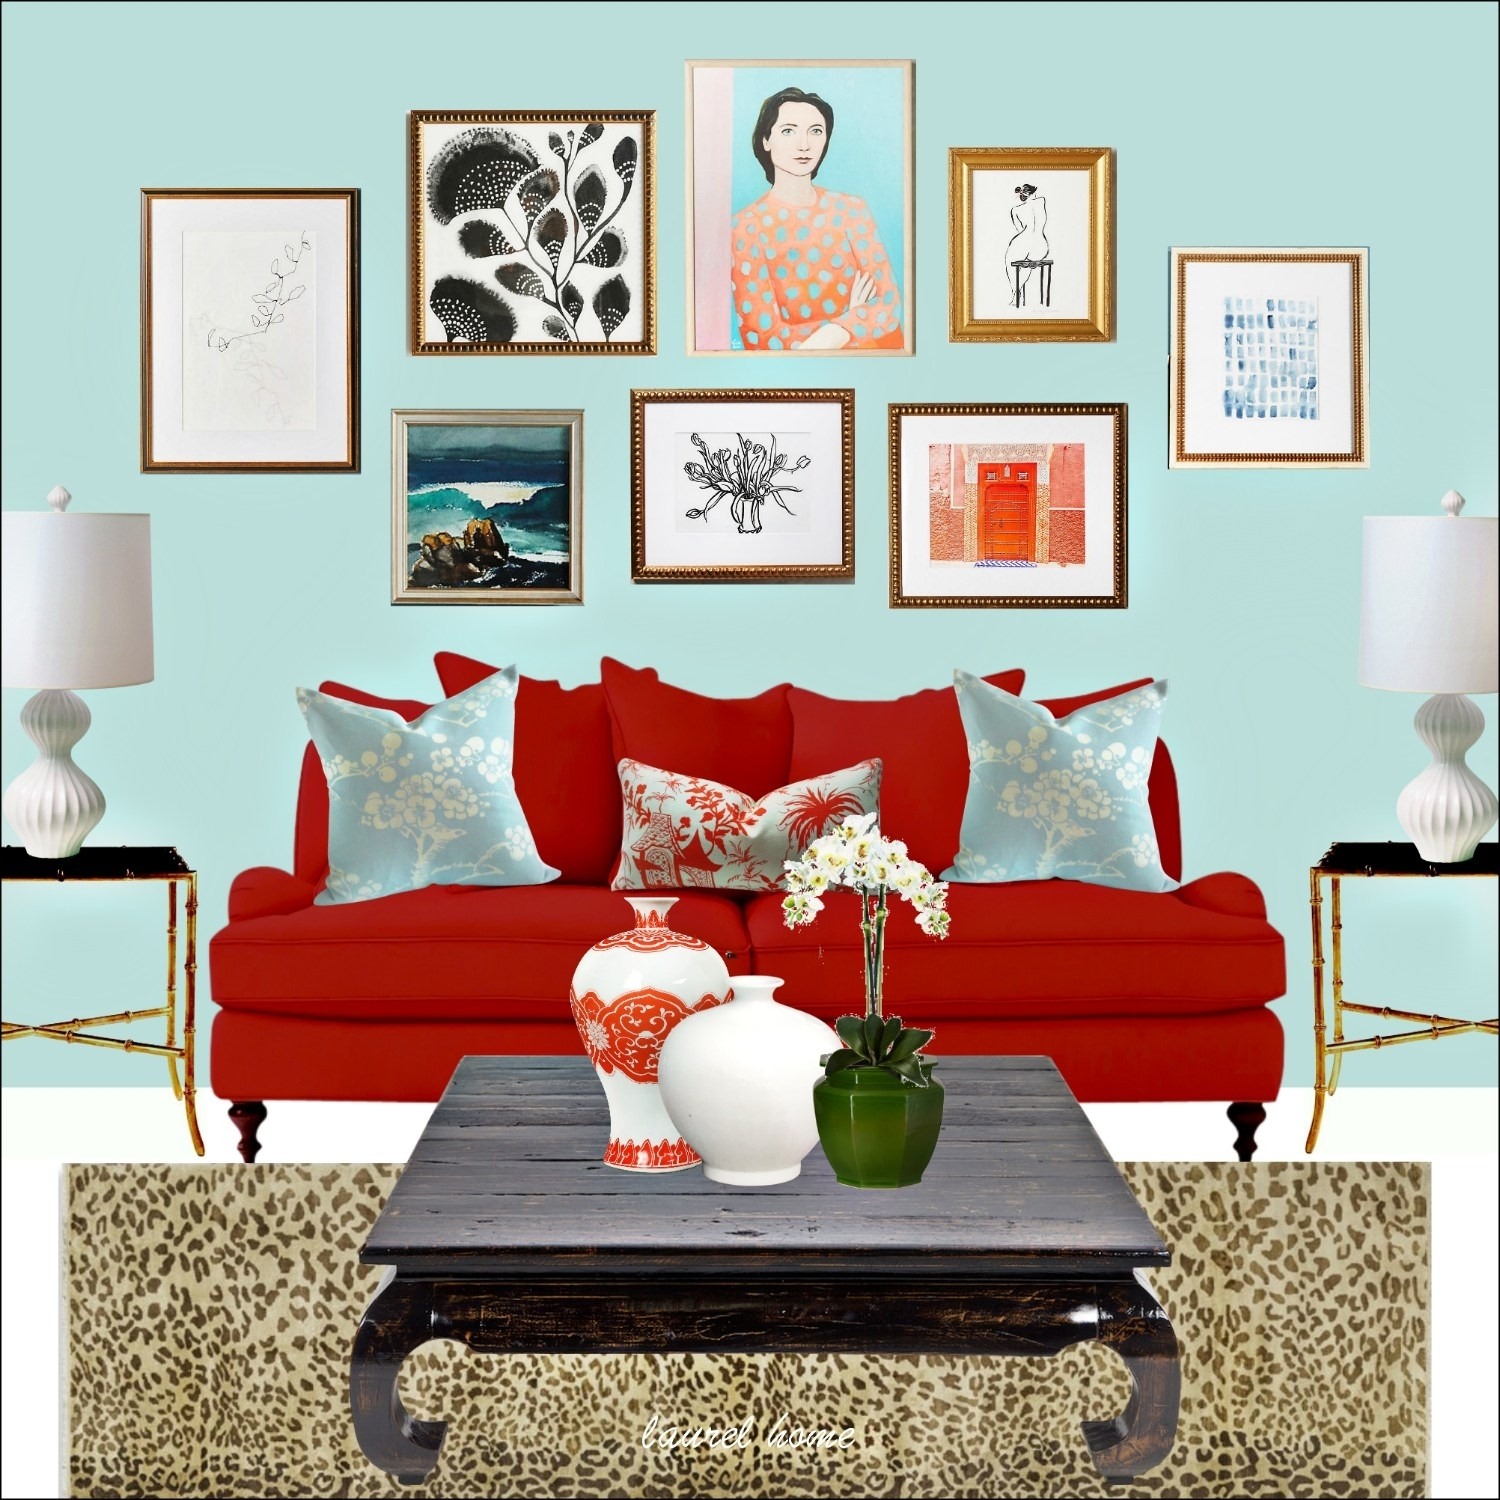 Anthropologie Art Wall With Artfully Walls Art And Red Sofa And within Artfully Walls (Image 4 of 20)